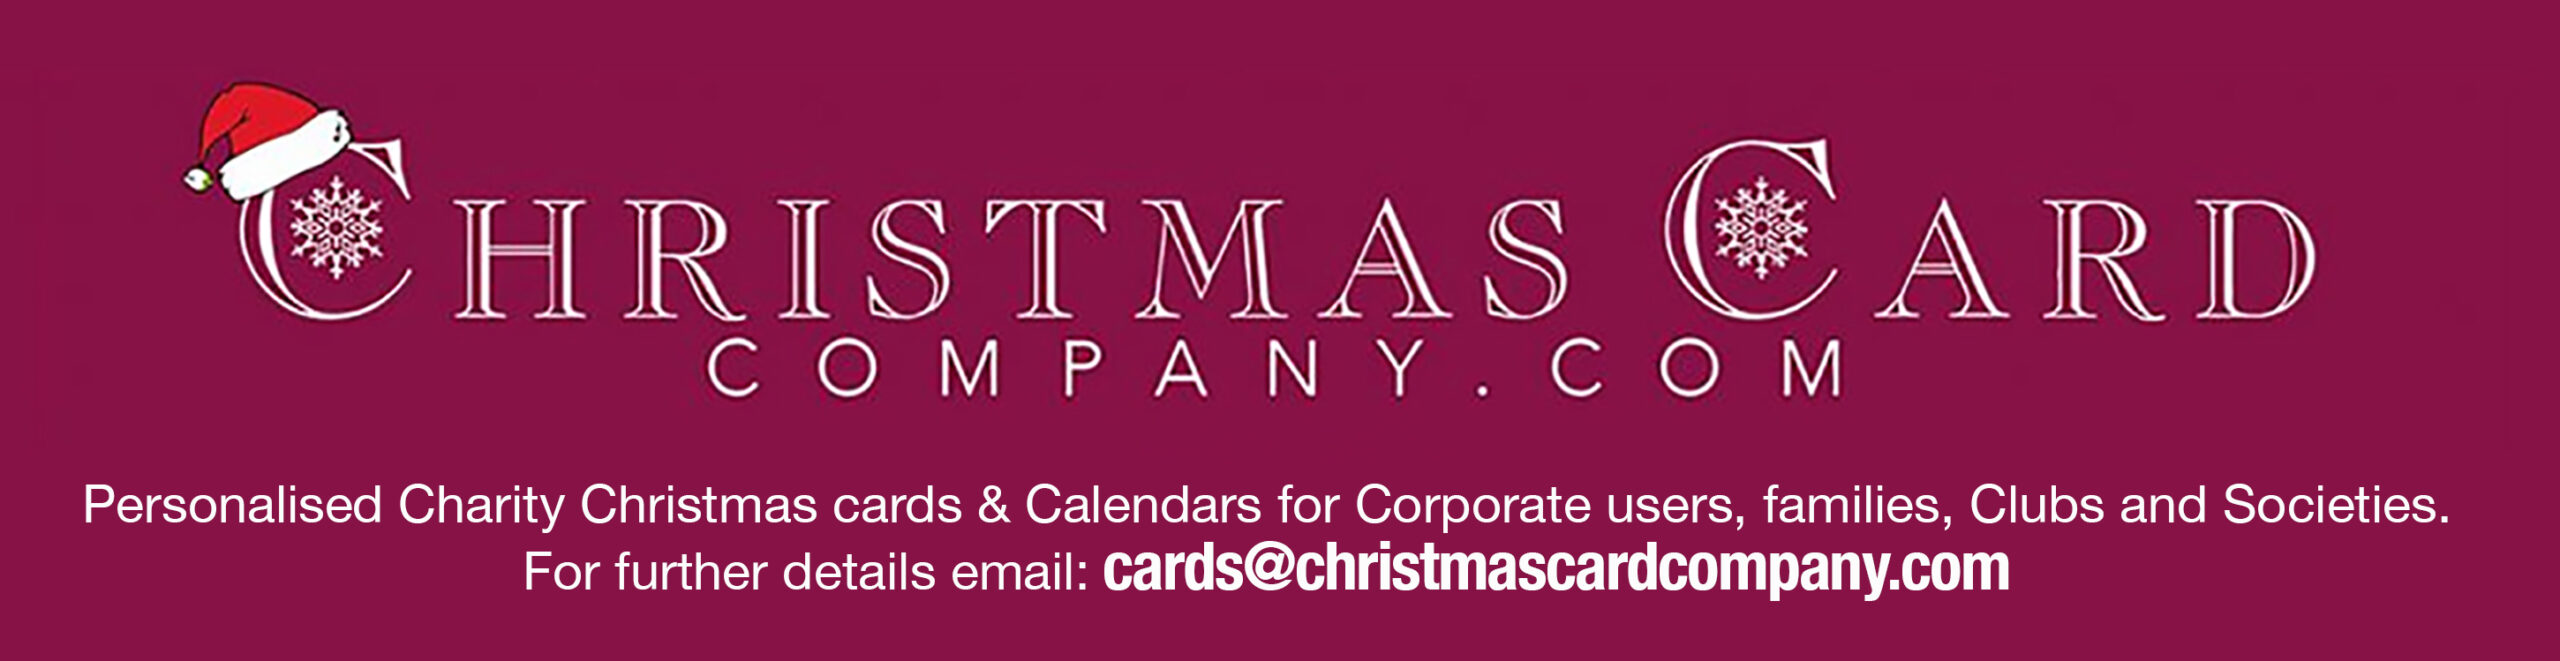 Personalised Charity Christmas Cards